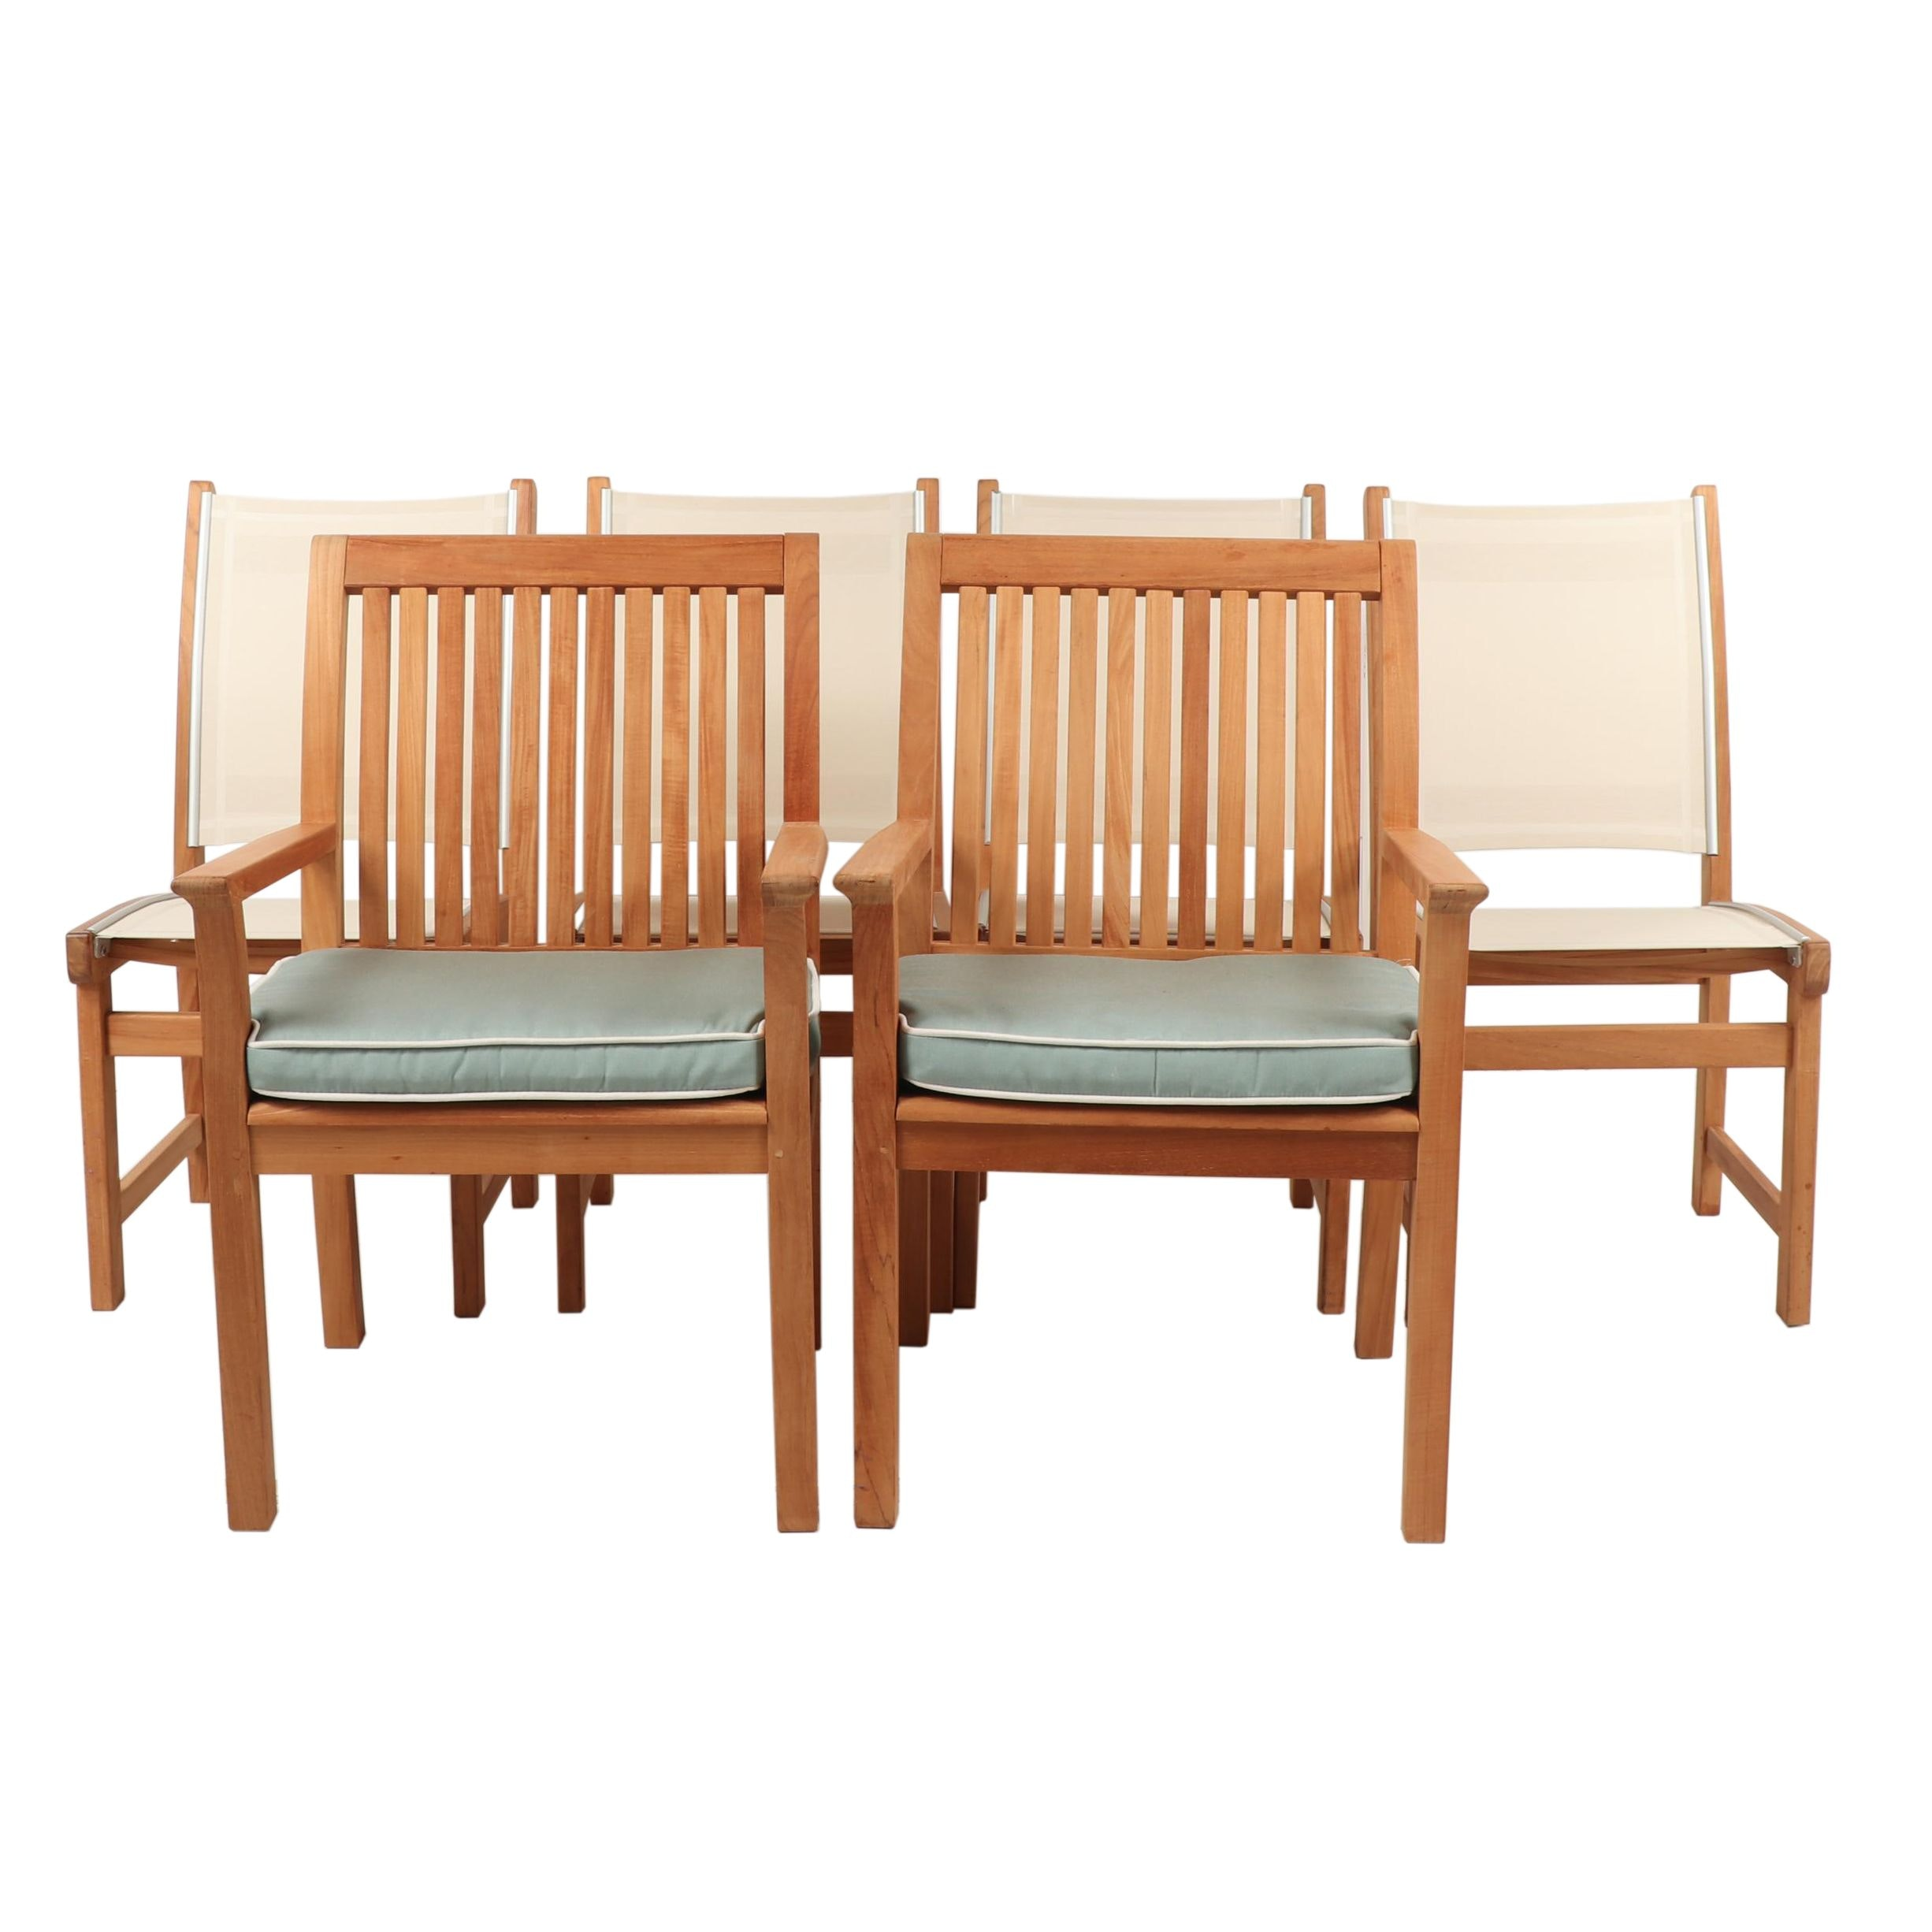 Contemporary Kingsley~Bate Outdoor Teak Chairs